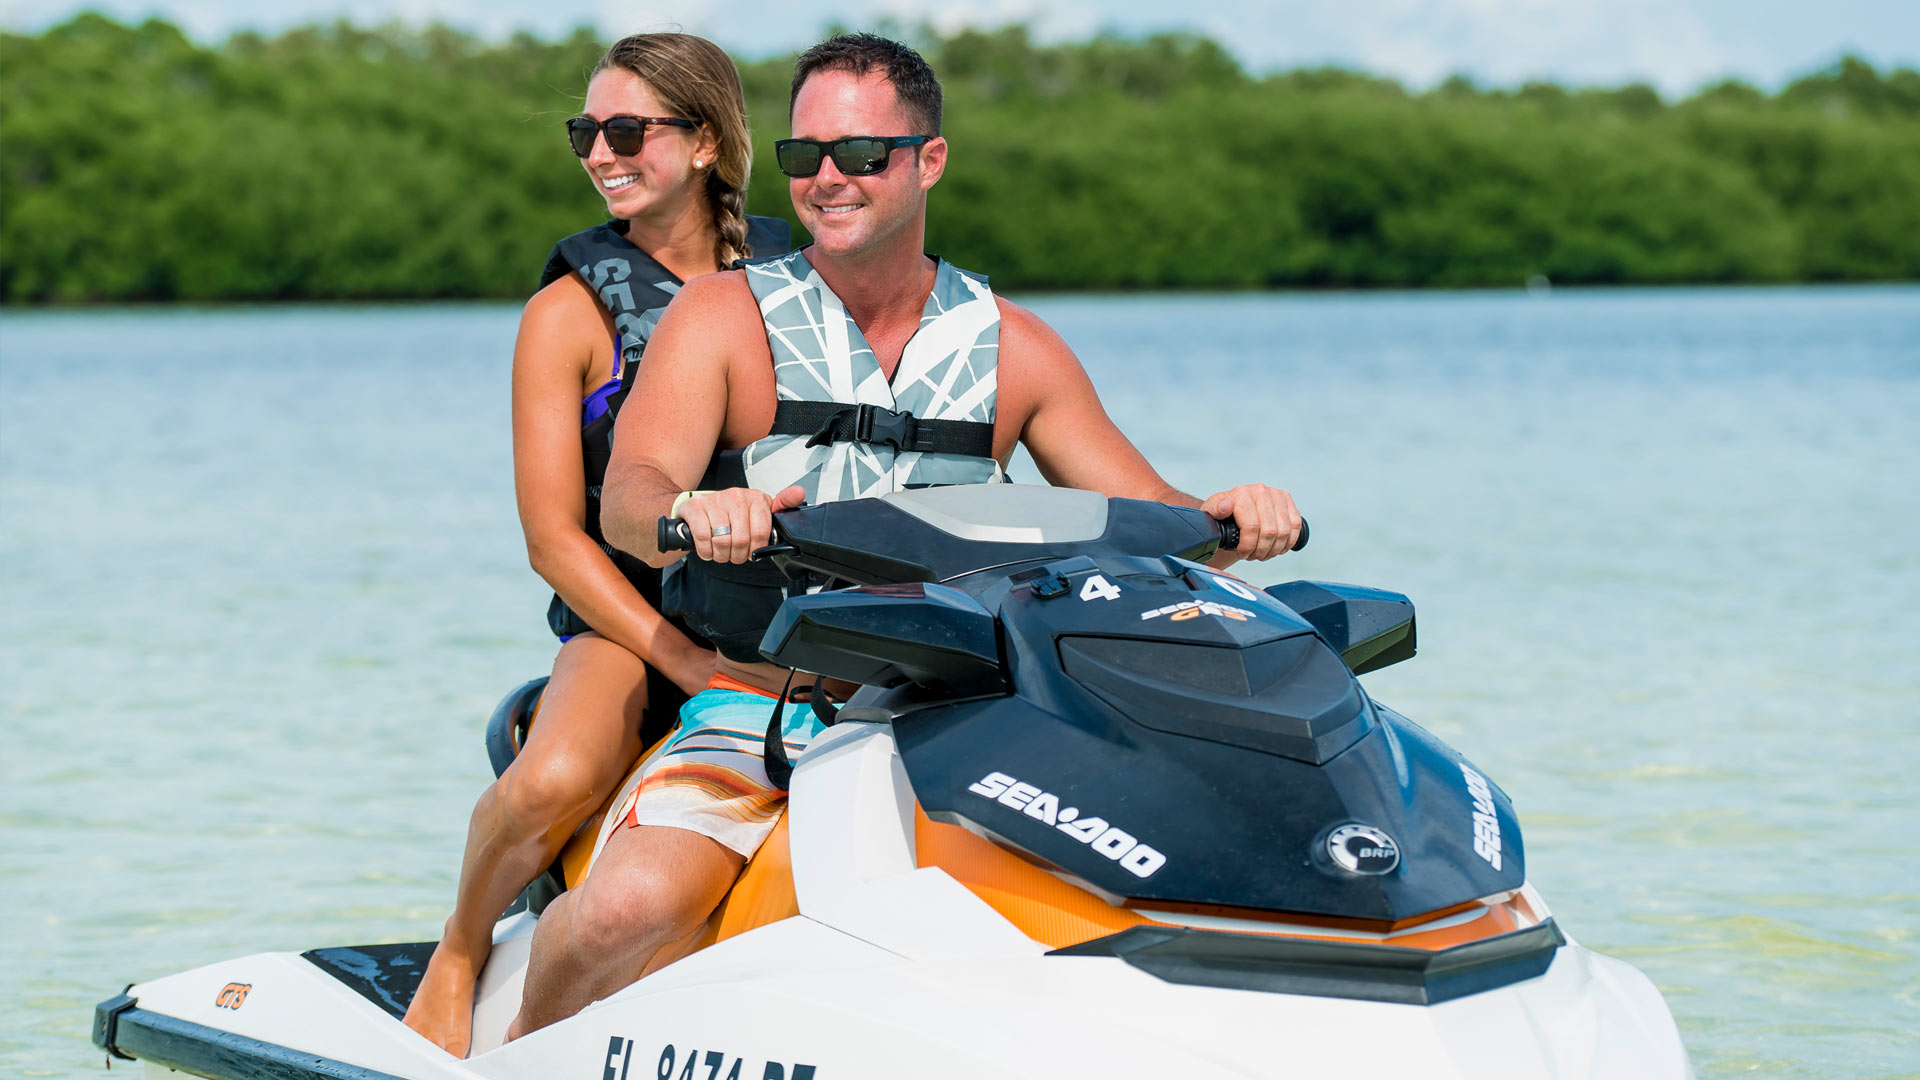 Image of a mother and son riding a jet ski in Key West